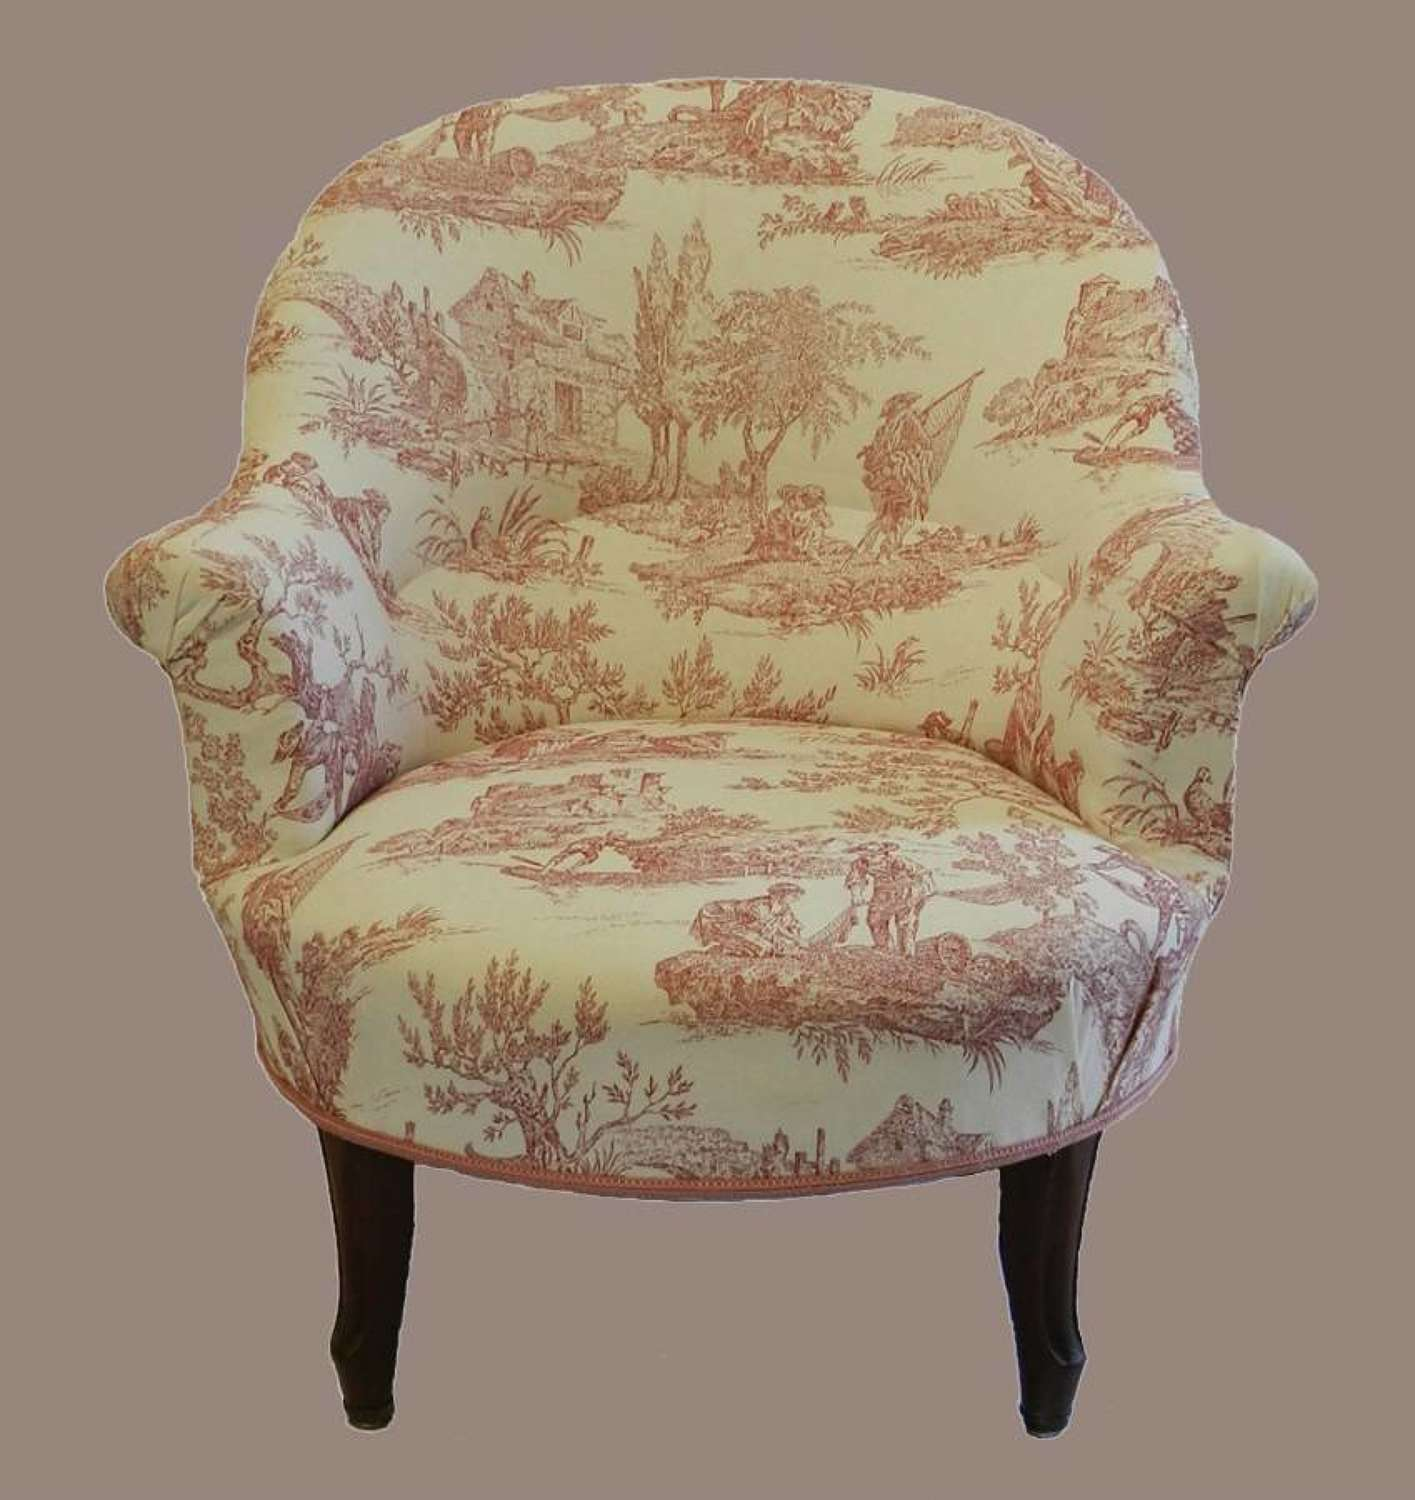 C19 French Louis Armchair Fauteuil Linen Toile de Jouy recently re-upholstered Slipper Chair